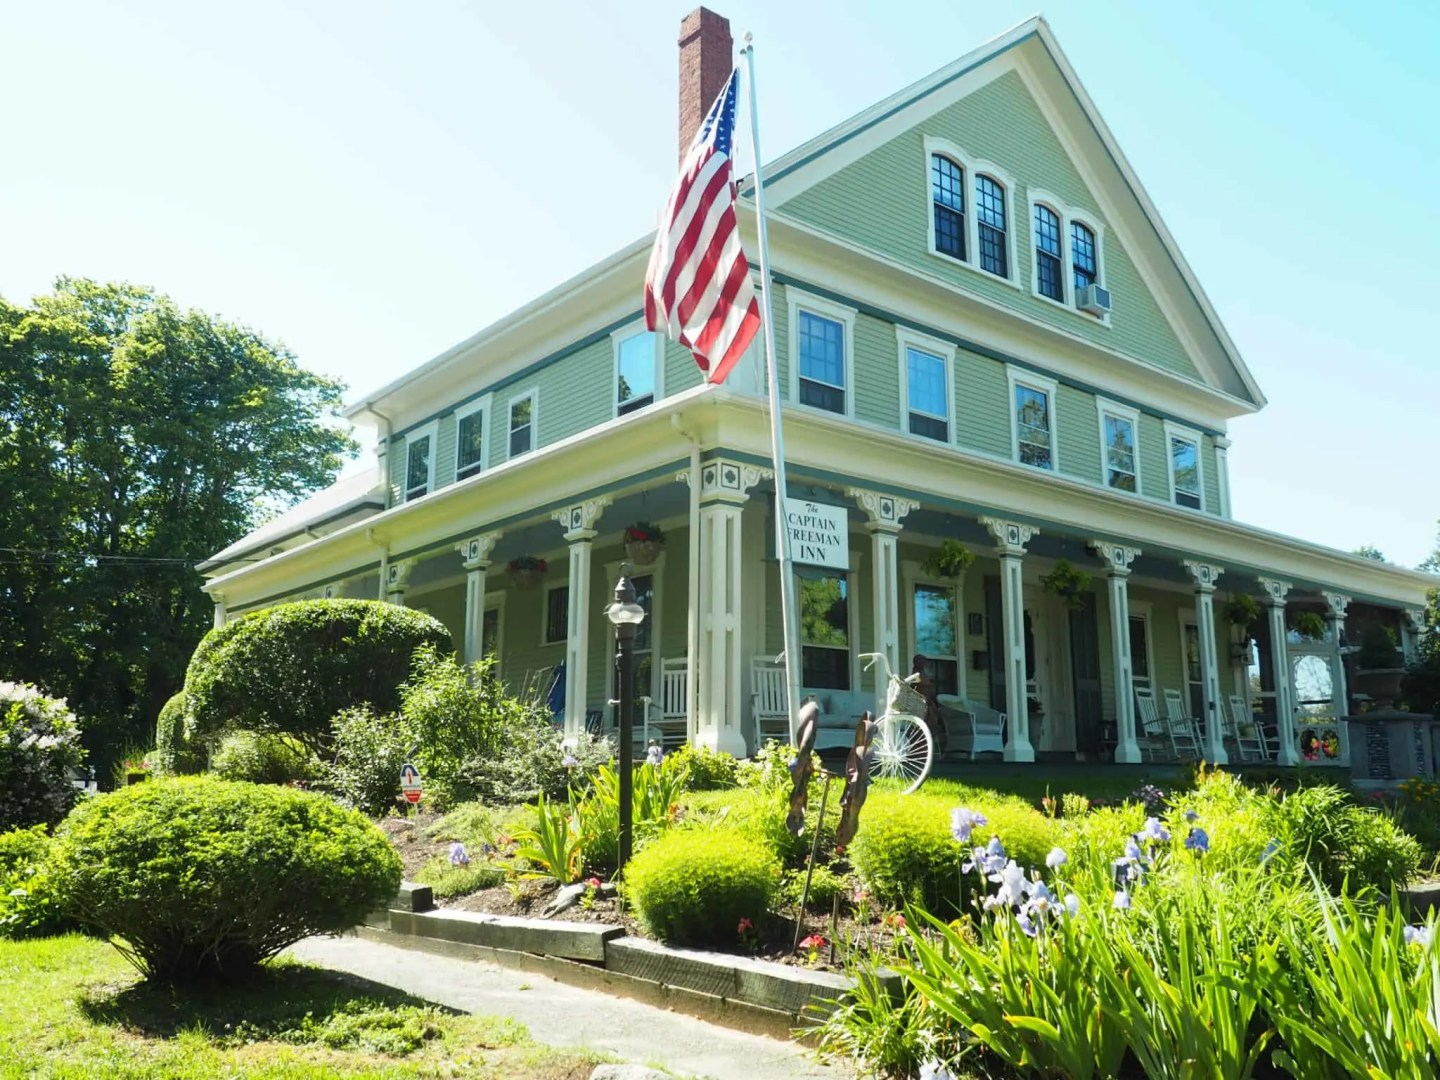 The Captain Freeman Inn on Cape Cod